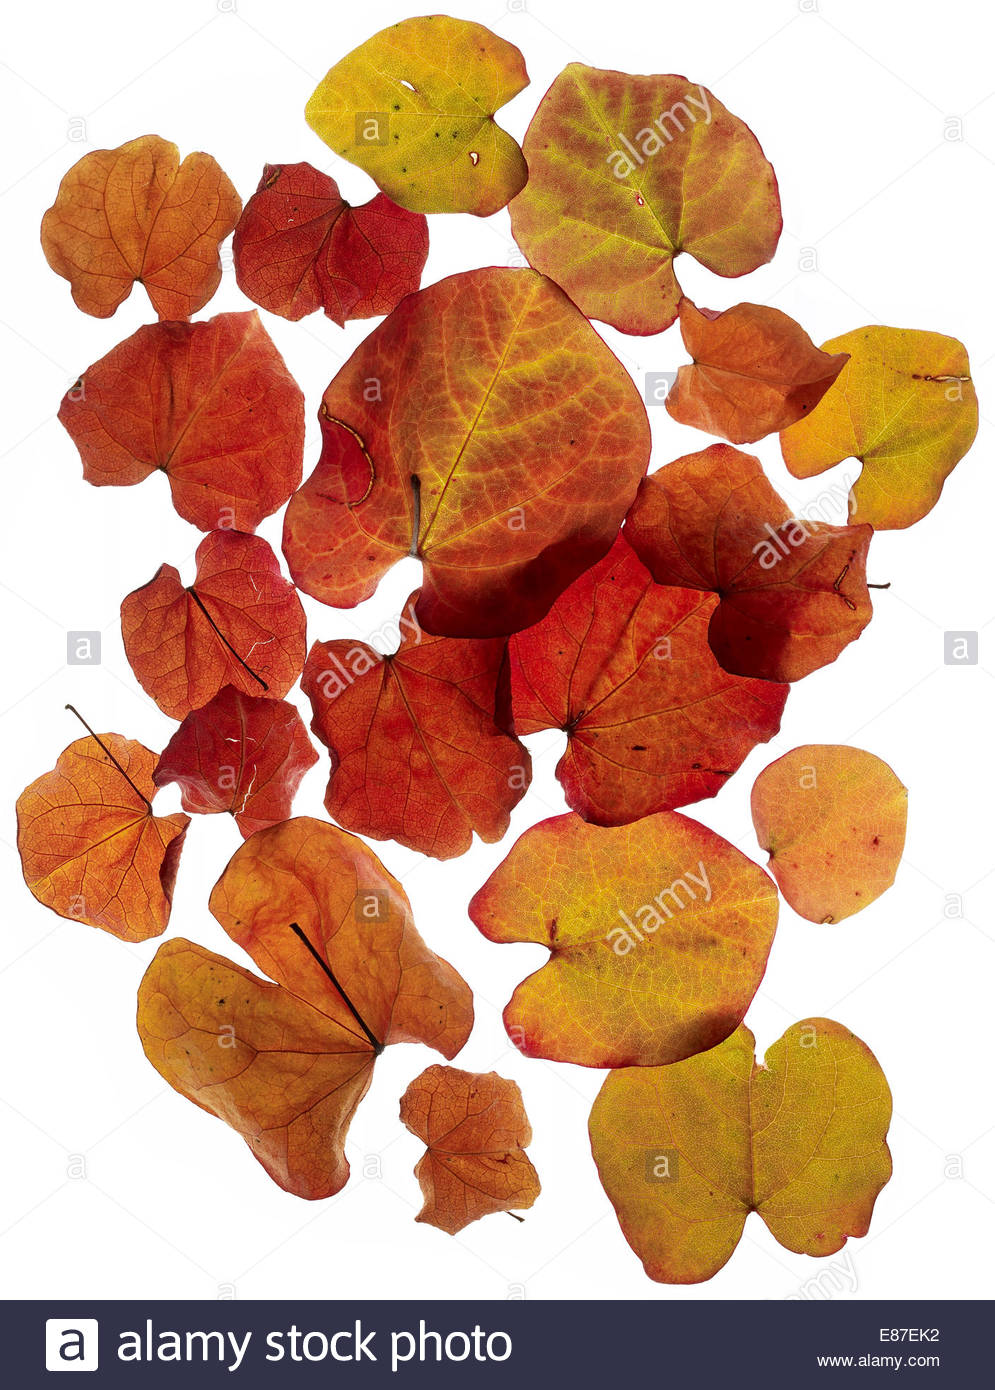 Colorful and bright background made of fallen autumn leaves - Stock Image